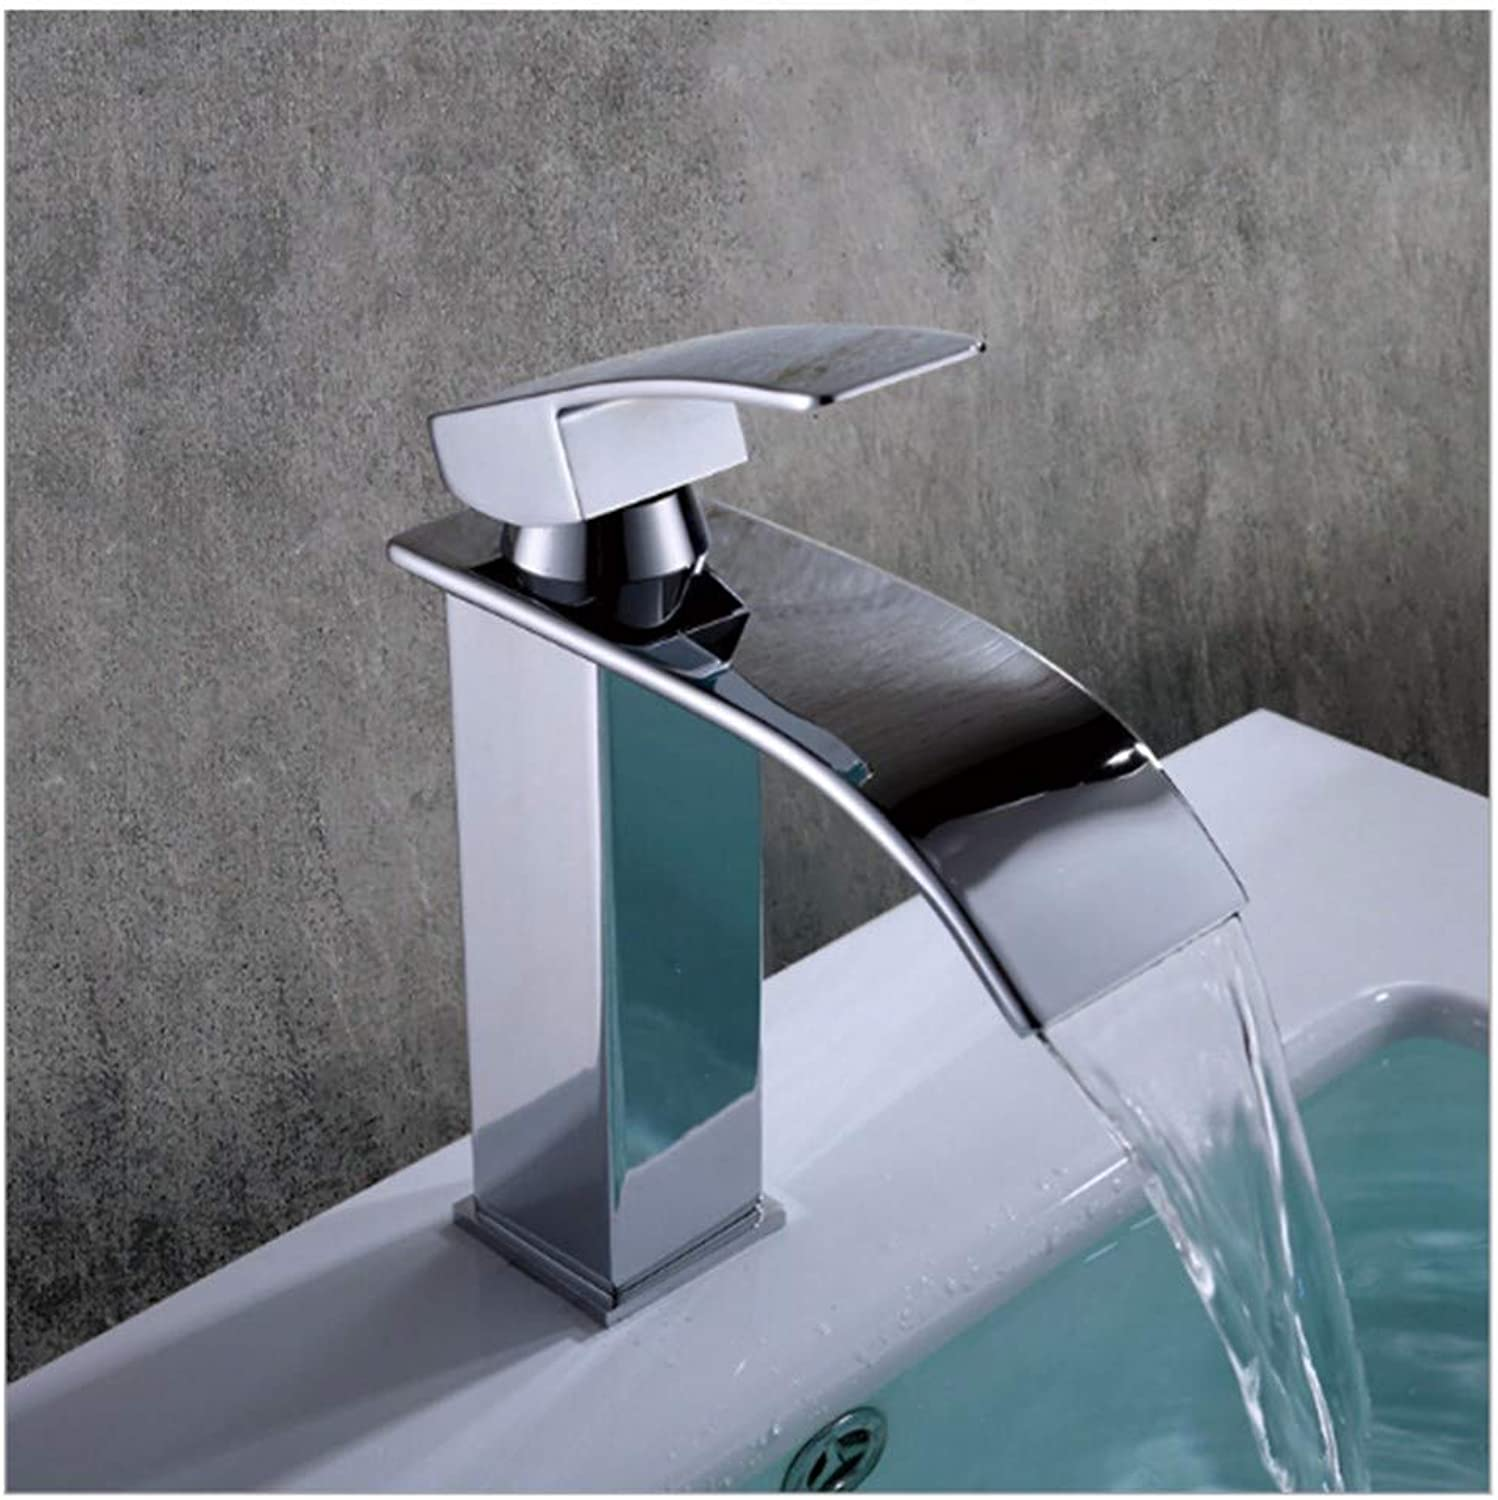 Faucet Retro Plating European Style Brass Faucet With Waterfall And Hose Pure Copper Vintage Curve High-End Polished Water Tap Washbasin Mixer Basin Sink Bathroom Single Spout 1 Lever Handle